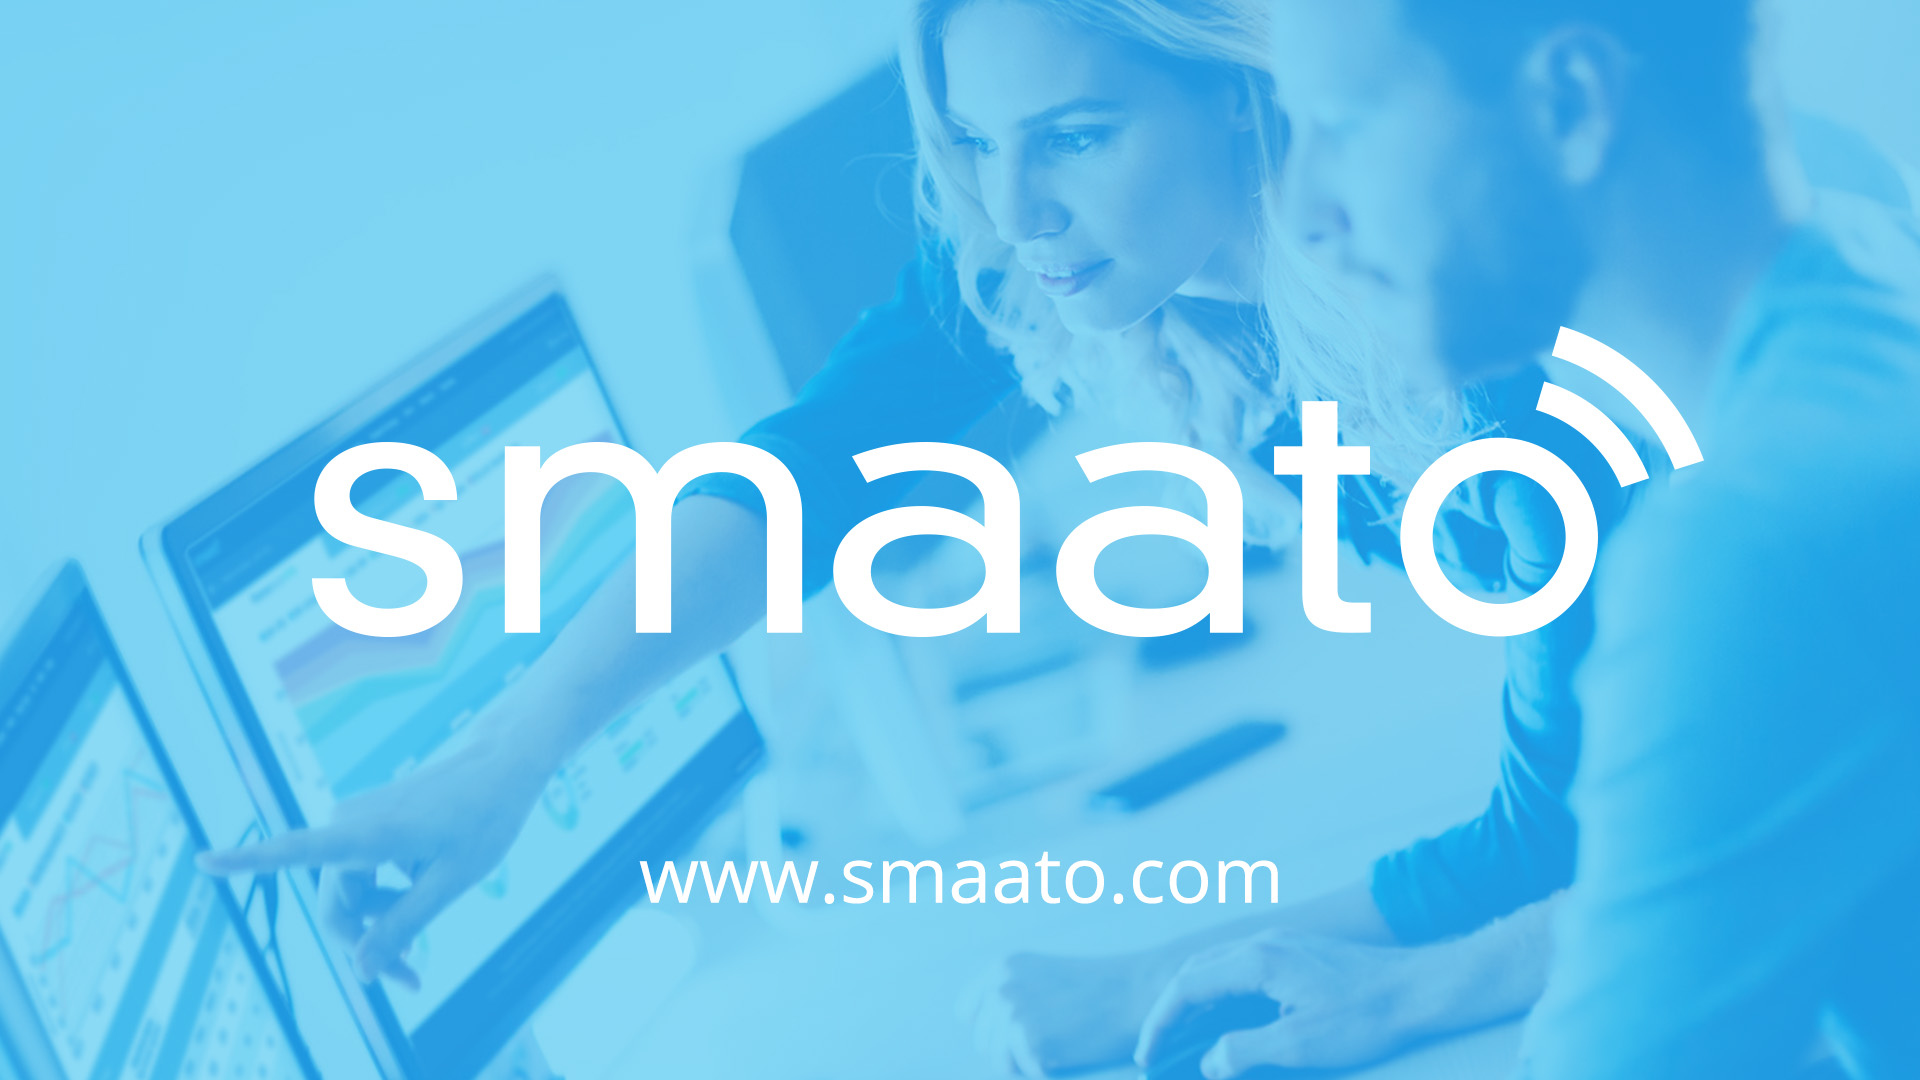 Adverty completes integration with US-based digital advertising technology platform Smaato